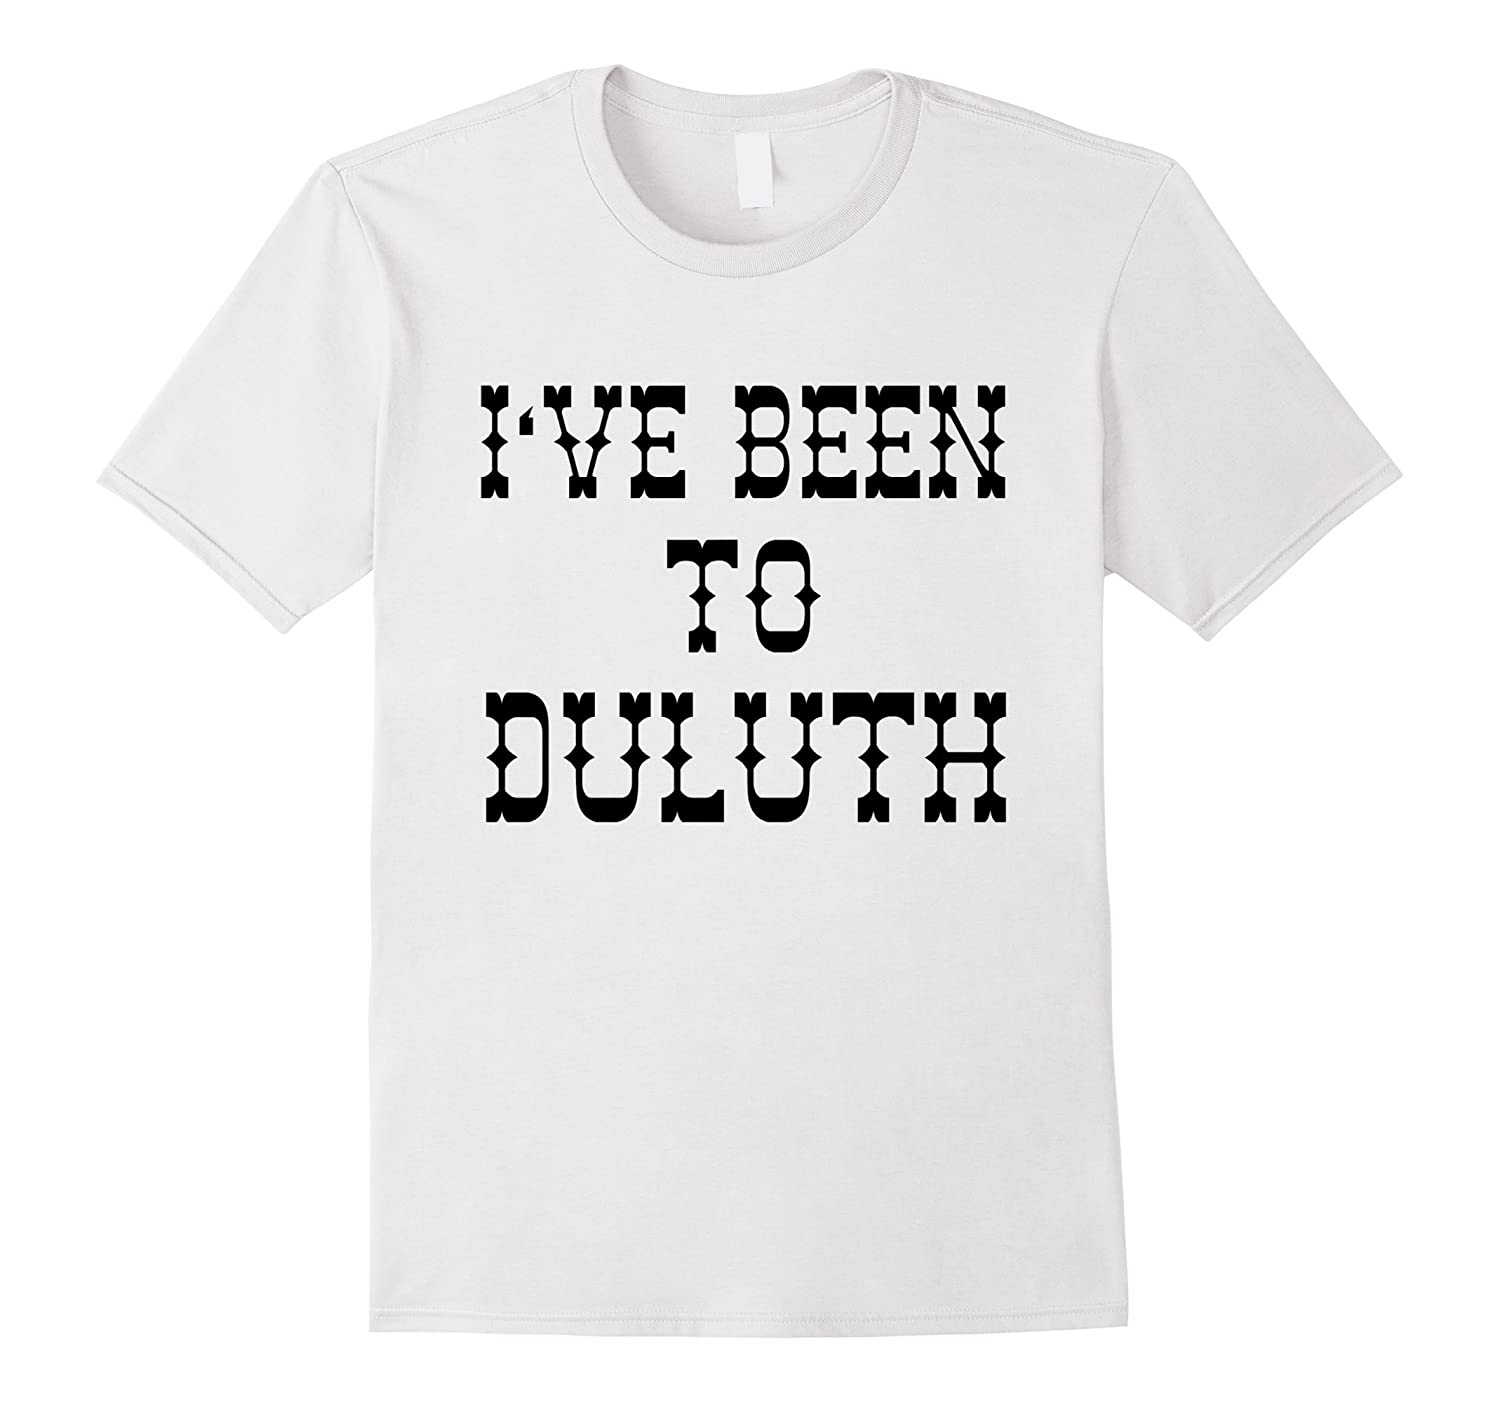 Ive been to duluth t shirt from scarebaby design rt for Duluth t shirt commercial